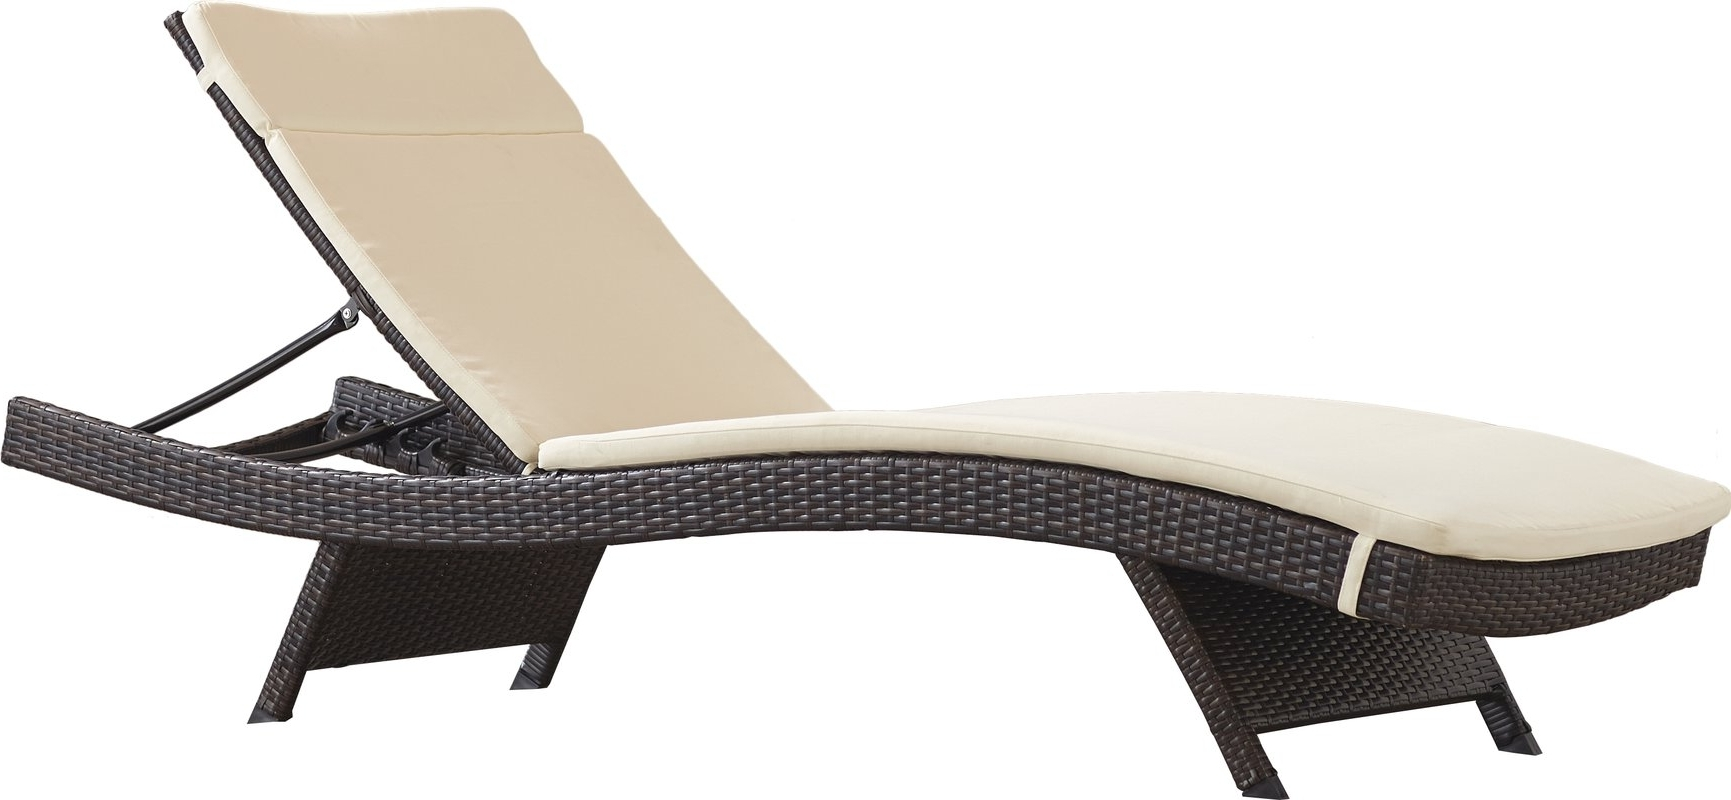 Most Up To Date Outdoor Wicker Chaise Lounges Regarding Brayden Studio Garry Wicker Adjustable Chaise Lounge With Cushion (View 3 of 15)